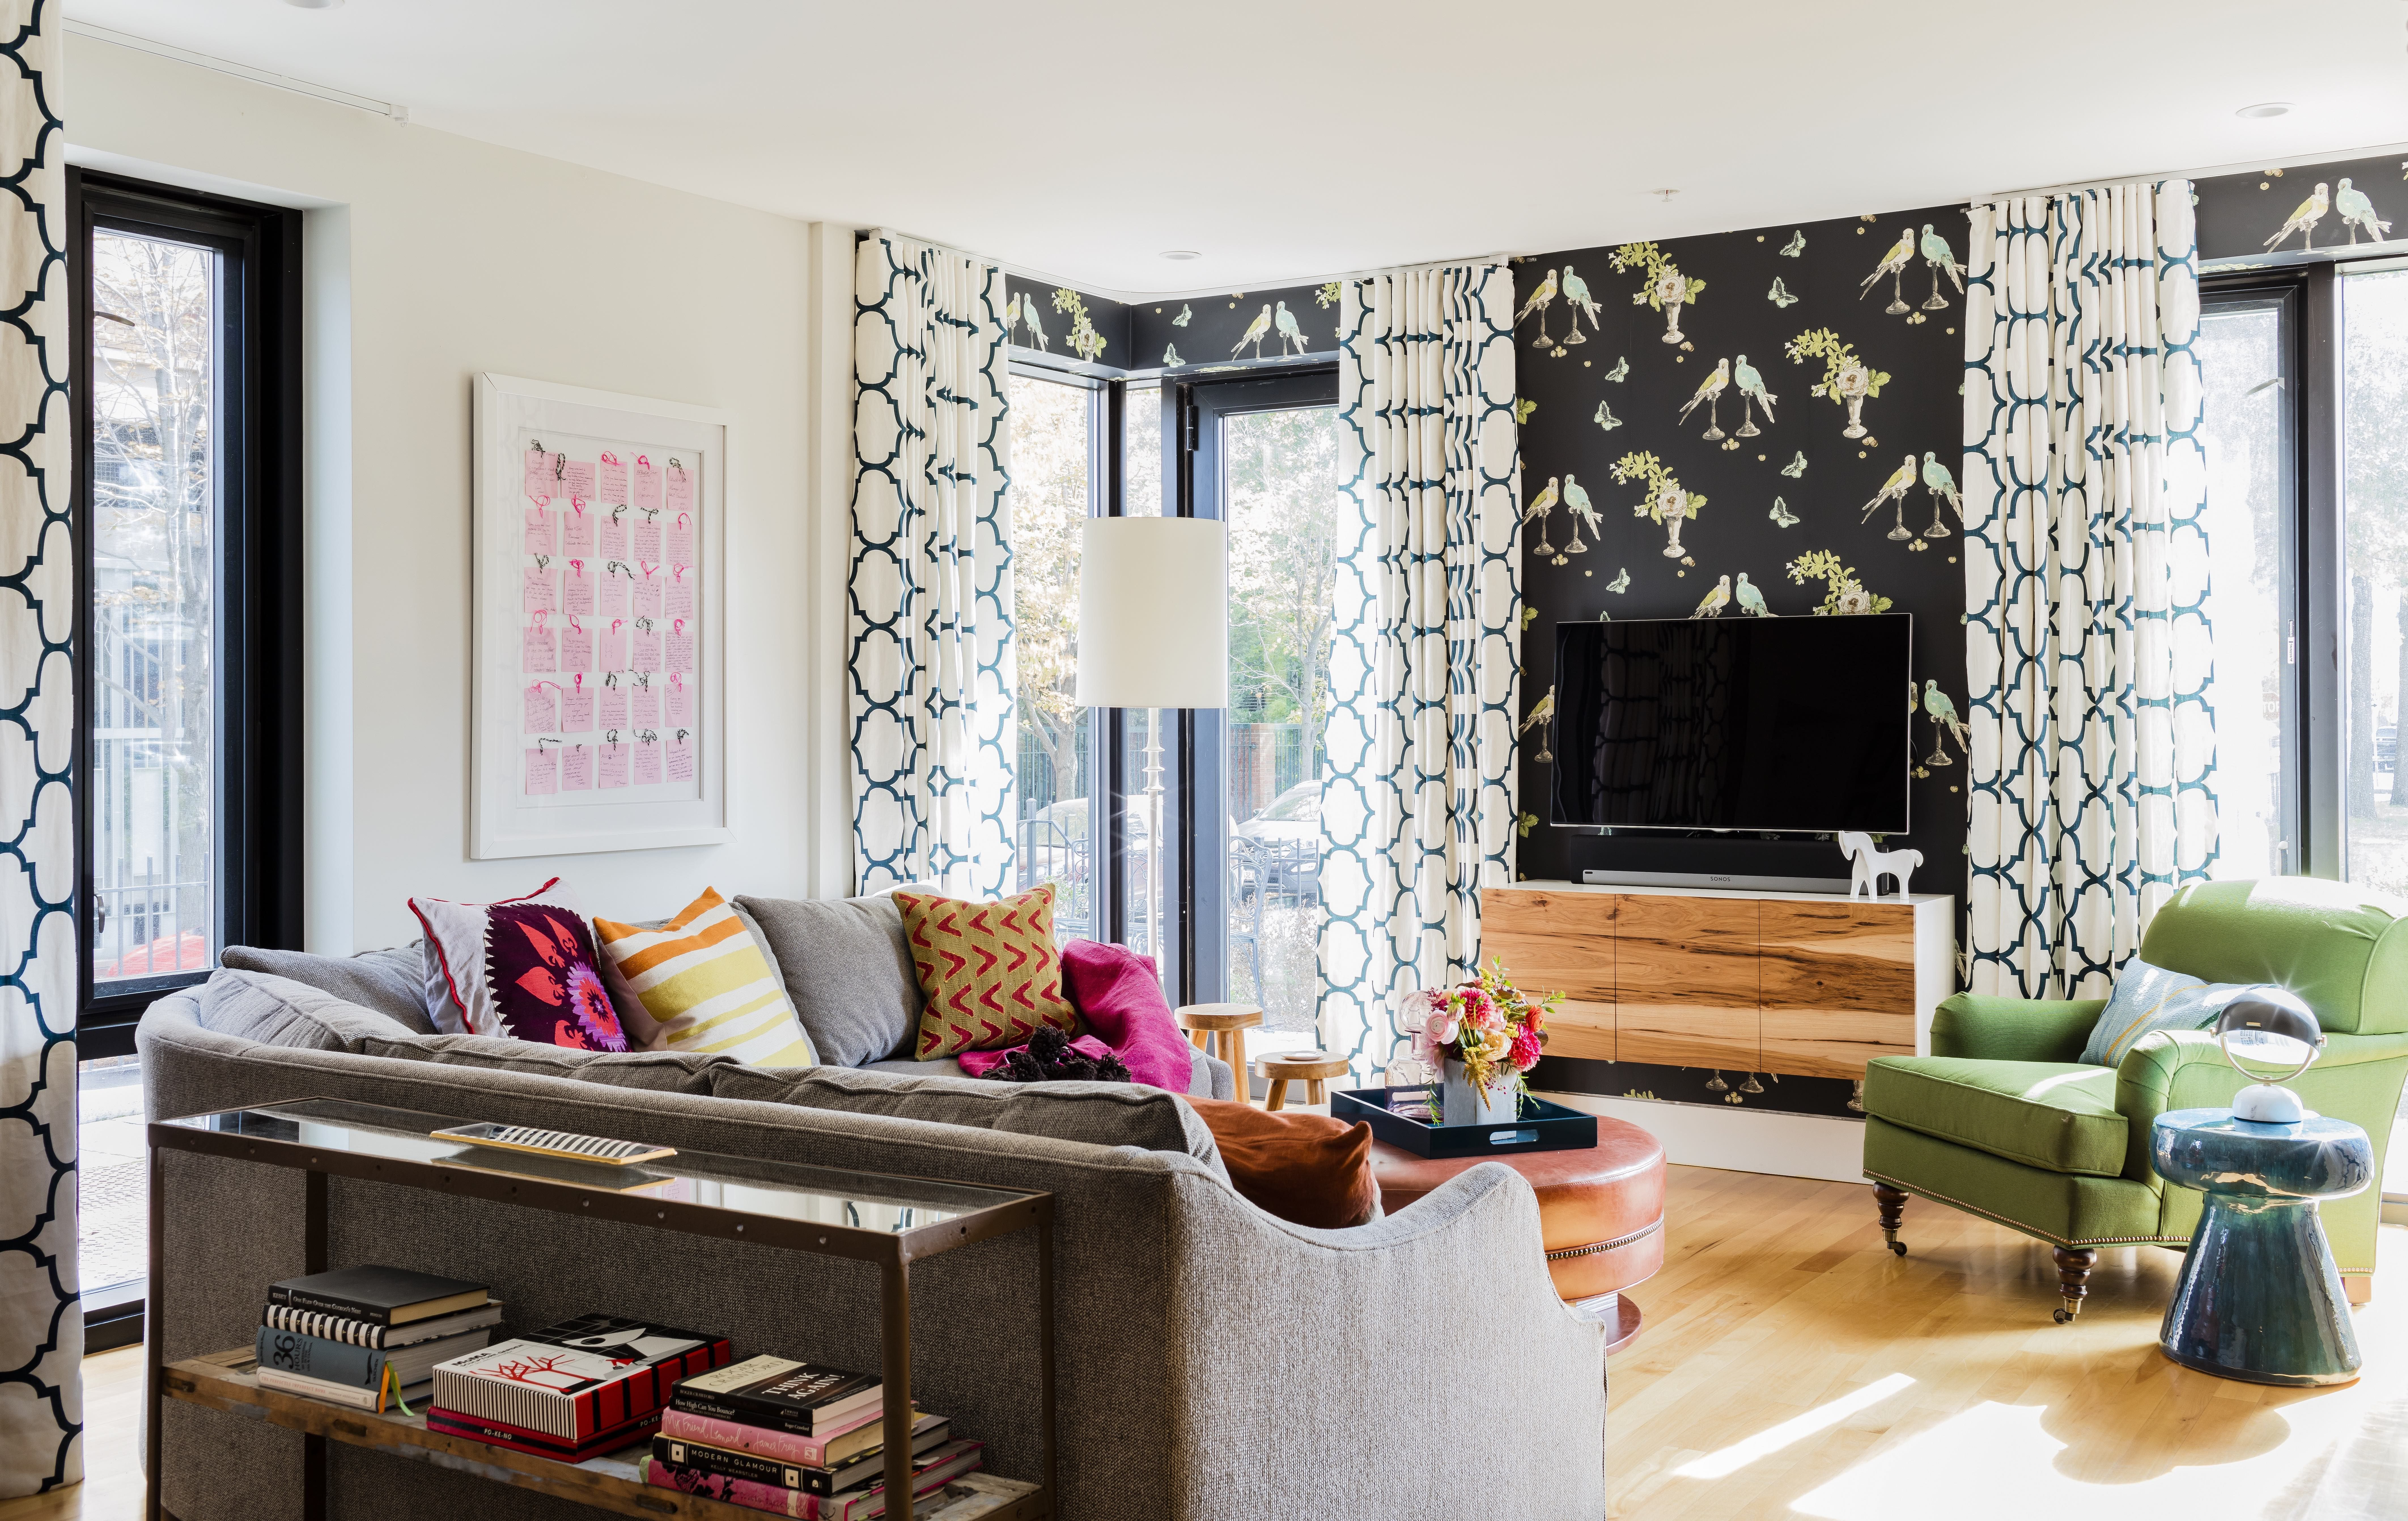 Bold Living Rooms With Patterns - How To Mix Patterns In A Living Room